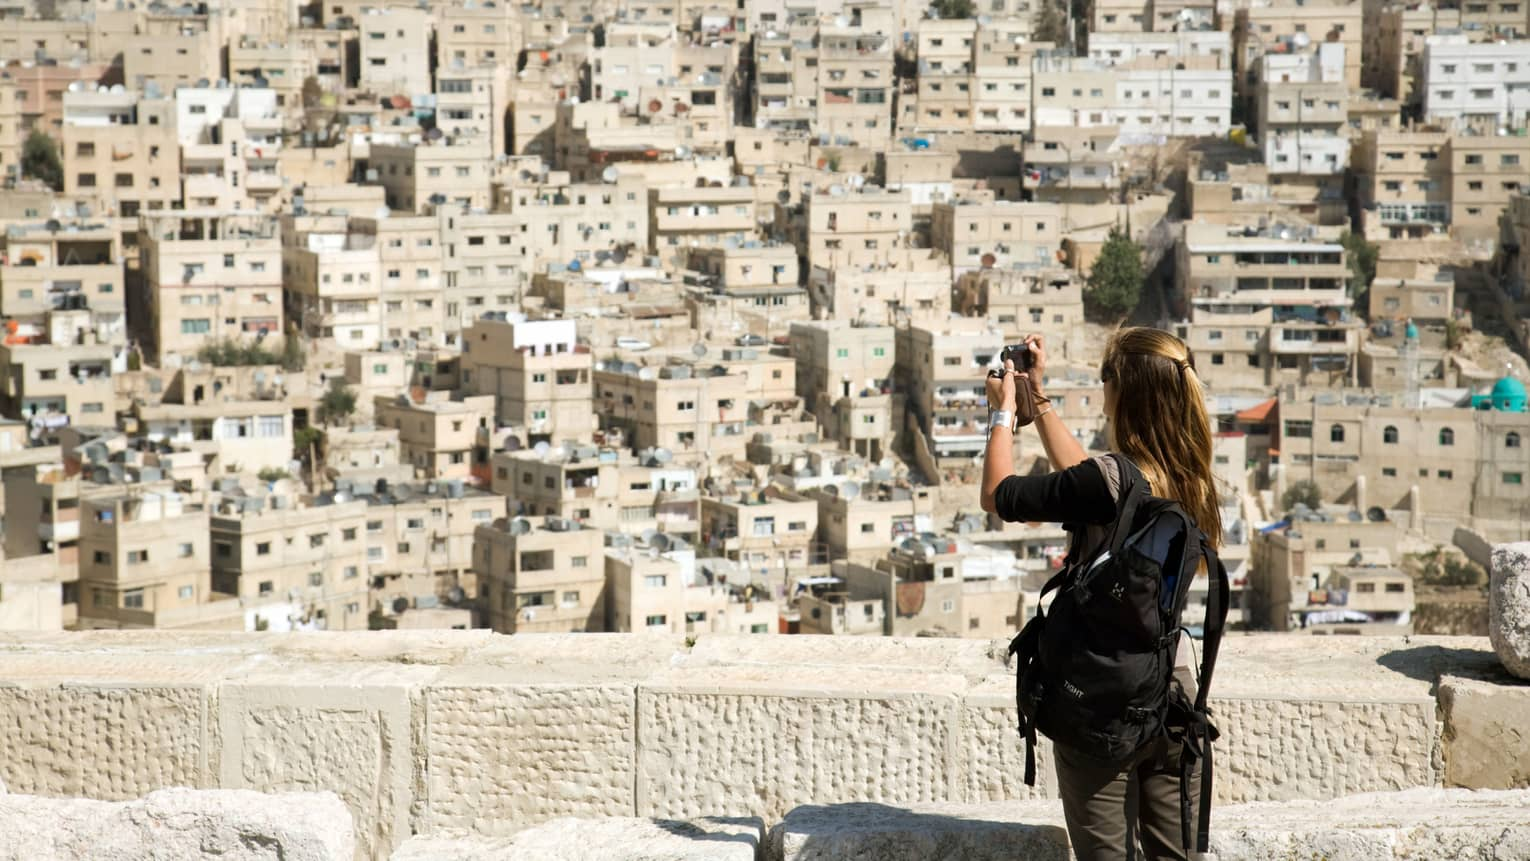 Woman takes photo at ledge overlooking Amman city buildings